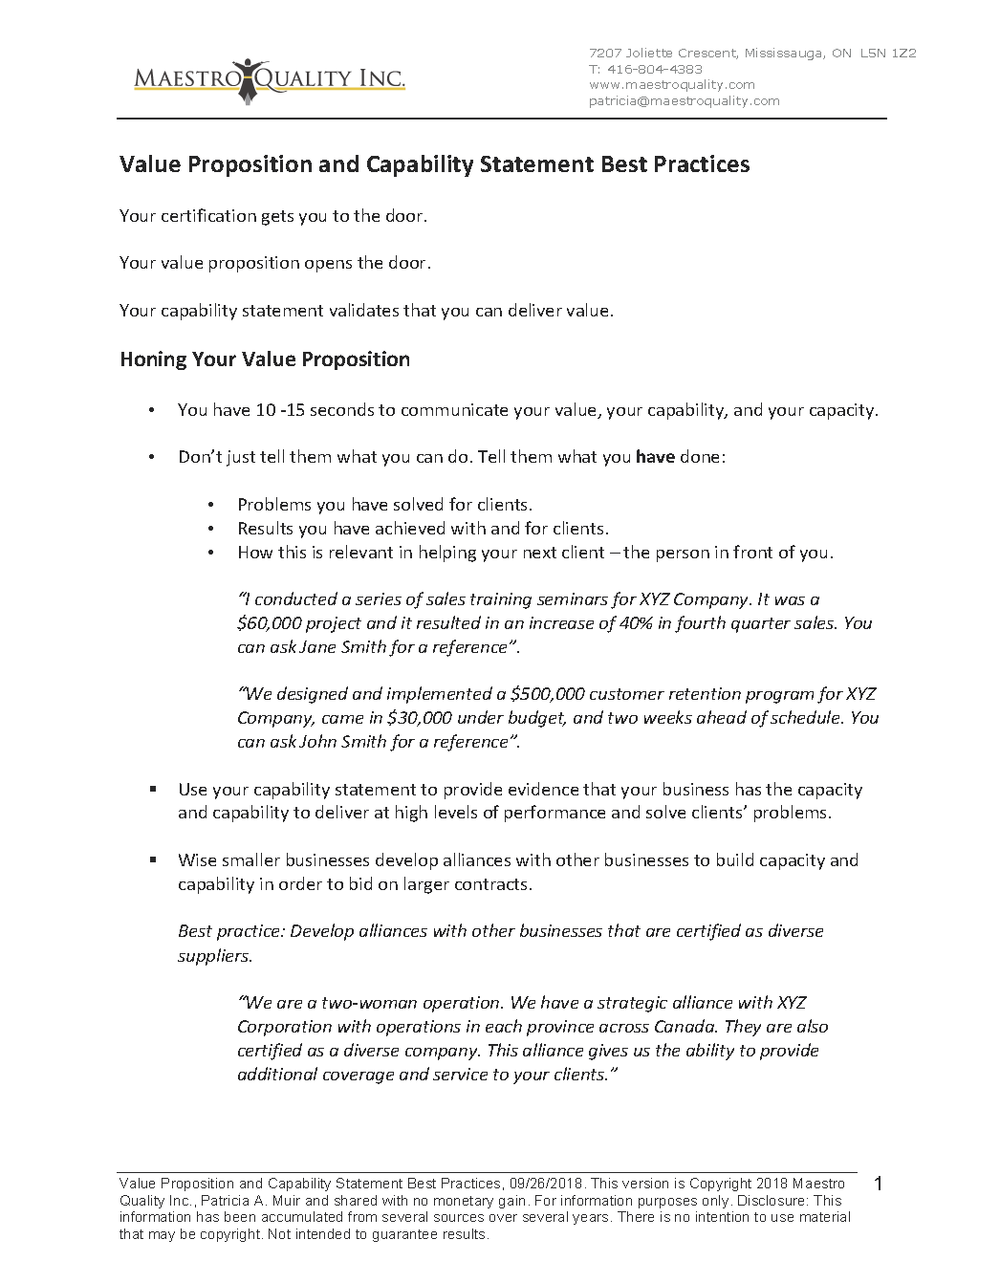 Value Proposition and Capability Statement Best Practices 09262018_Page_1.png